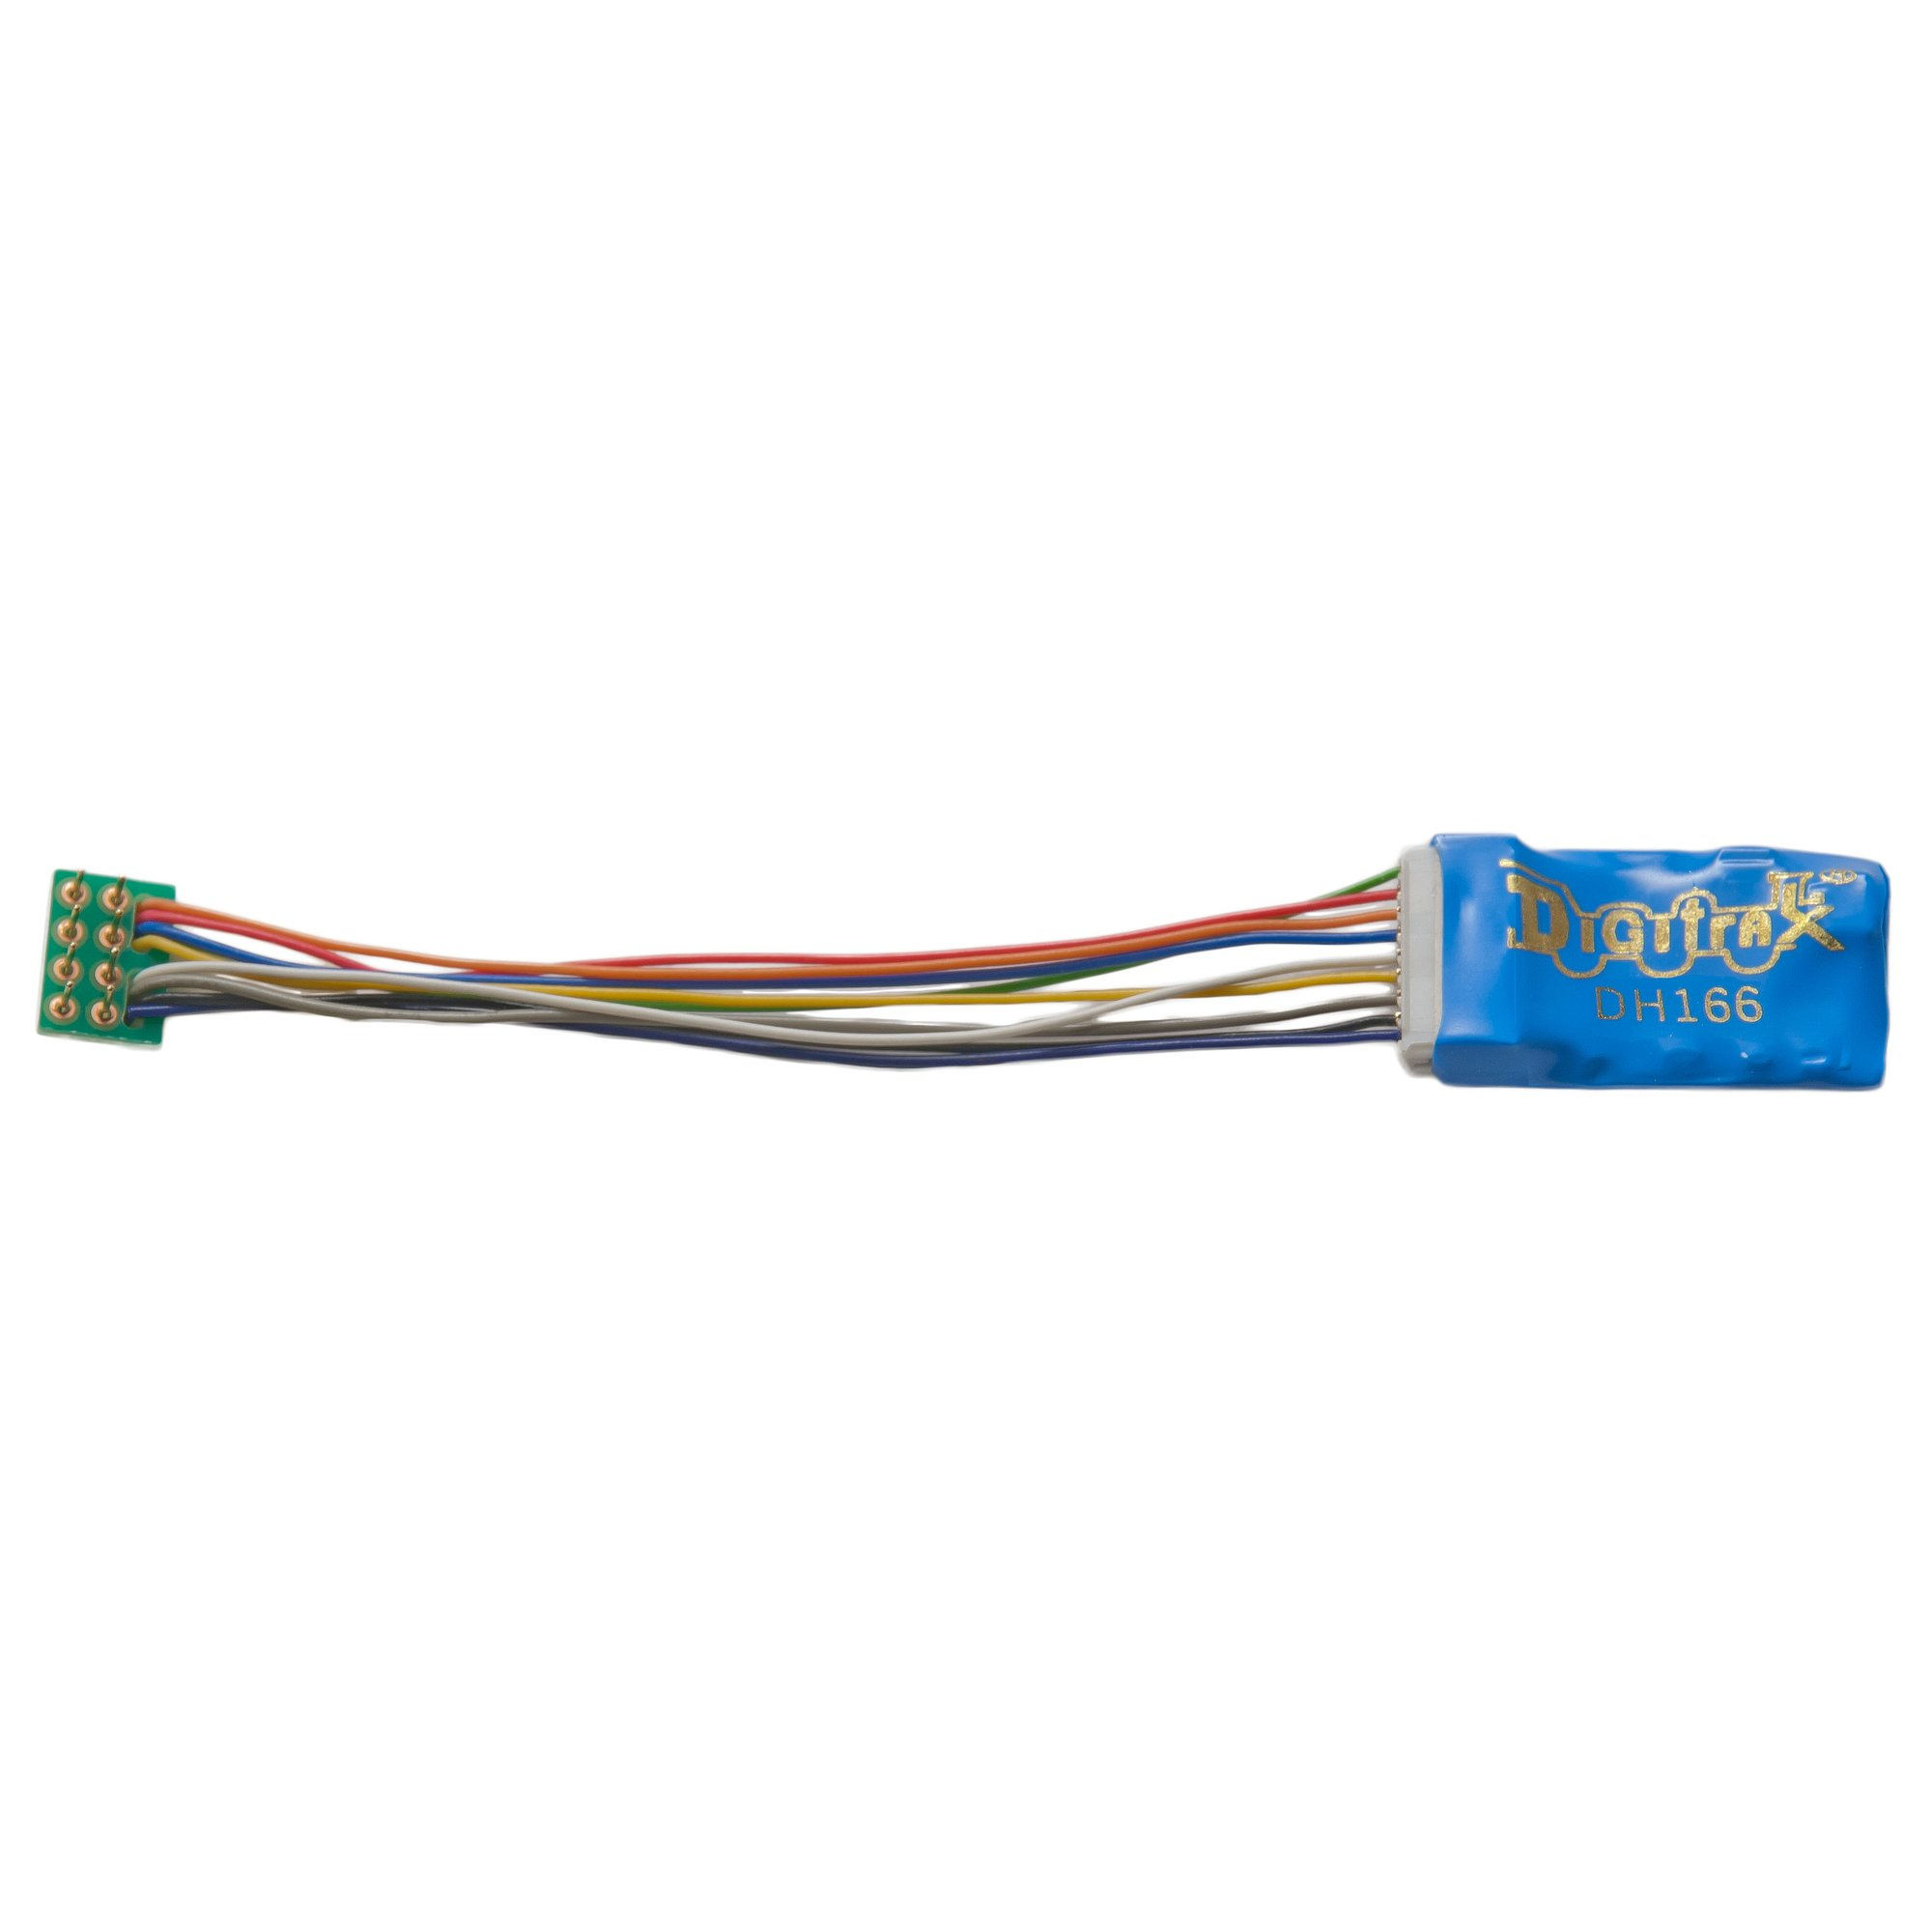 hight resolution of dh166p jpg 2000x2000 q85 amp premium ho scale decoder with digitrax easy connect 9 pin to dcc decoders for